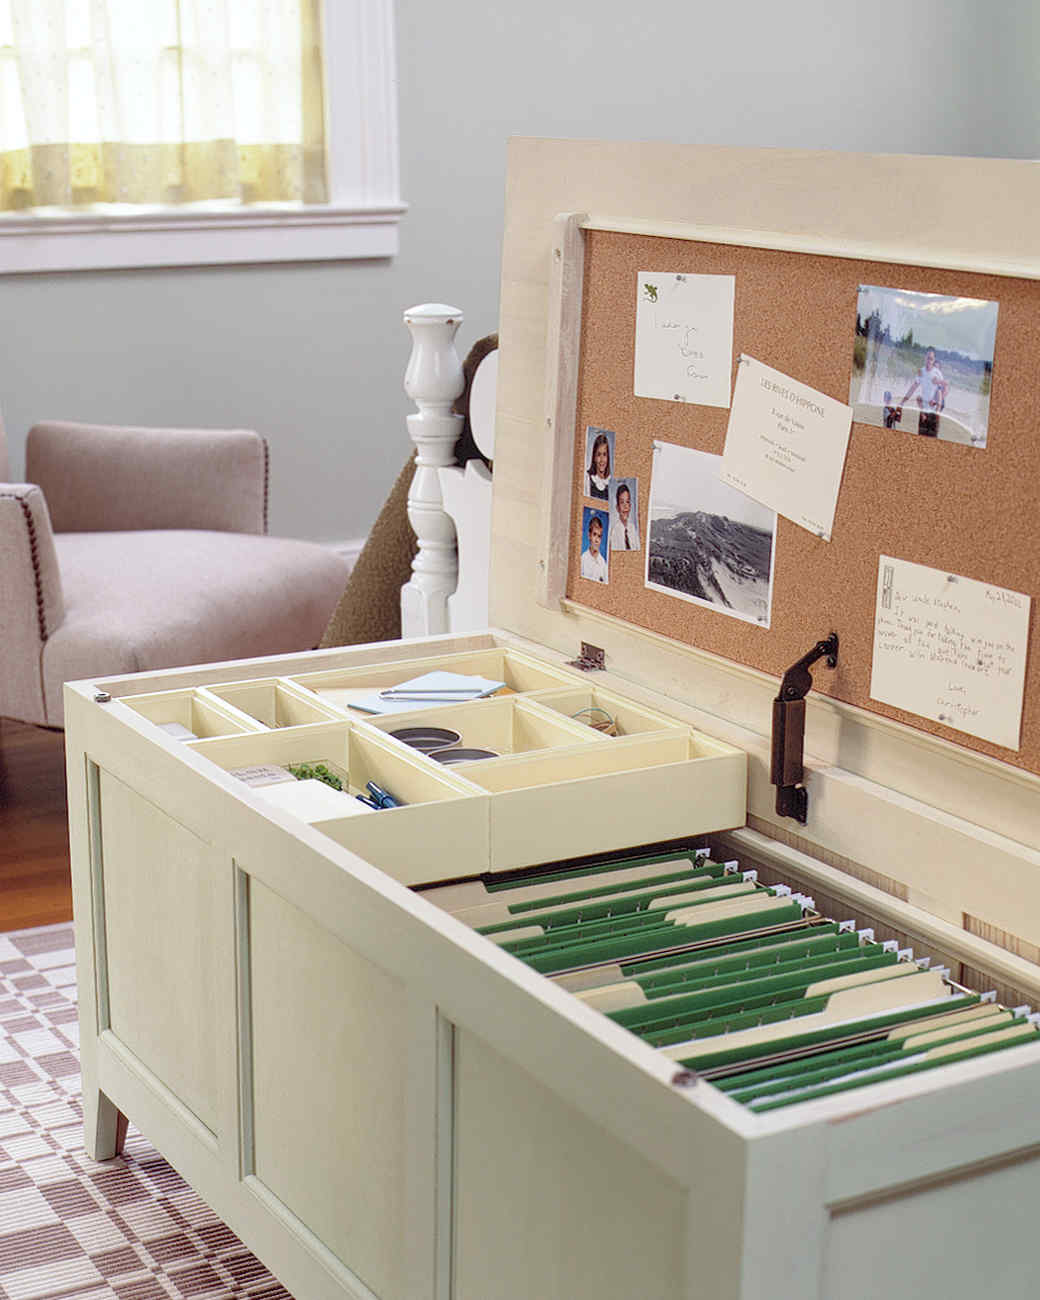 Brand new Office in a Chest | Martha Stewart HY48